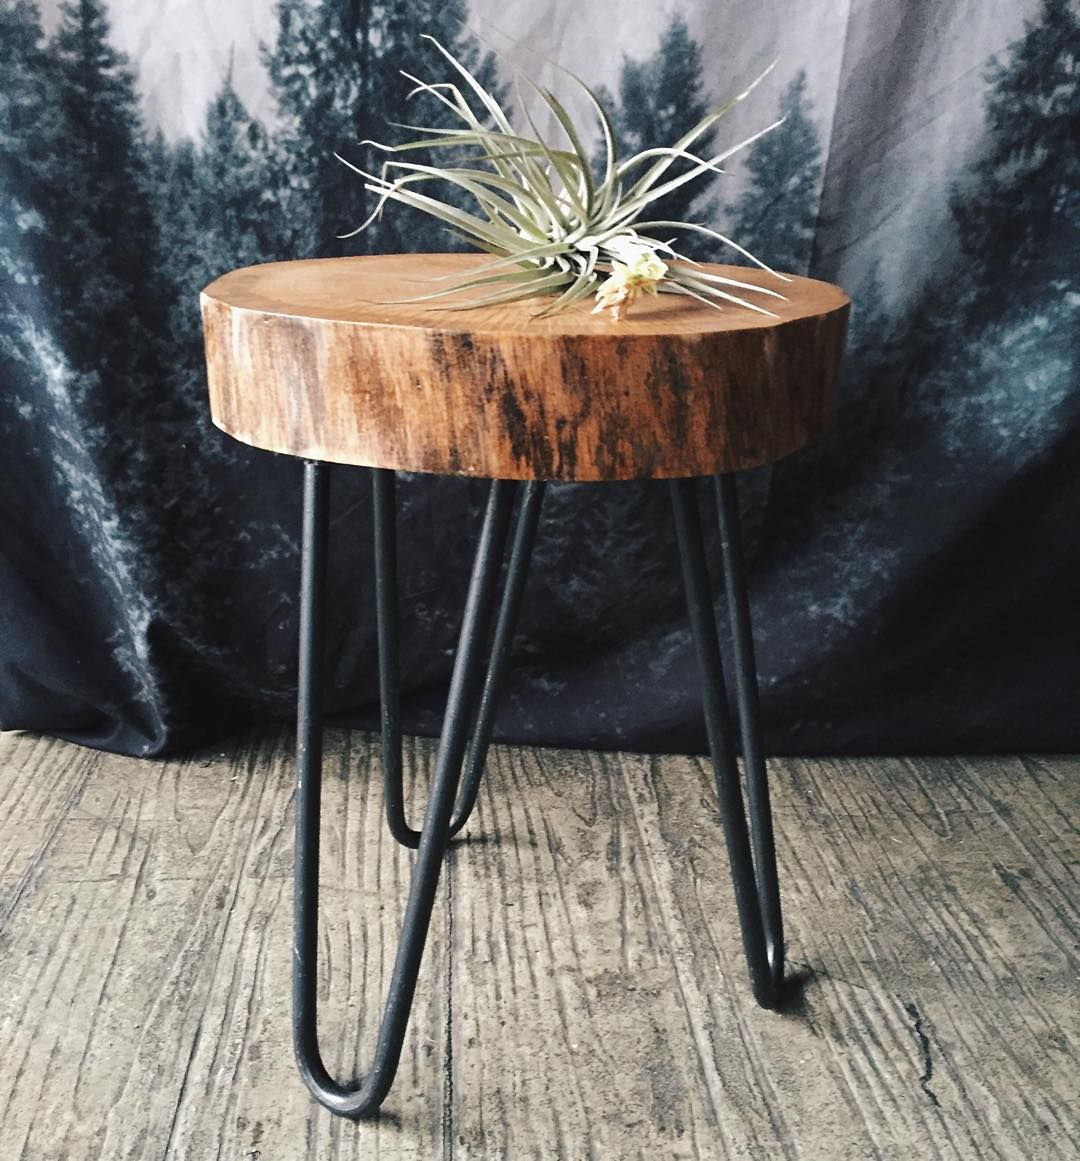 HOW TO MAKE TREE STUMP TABLE